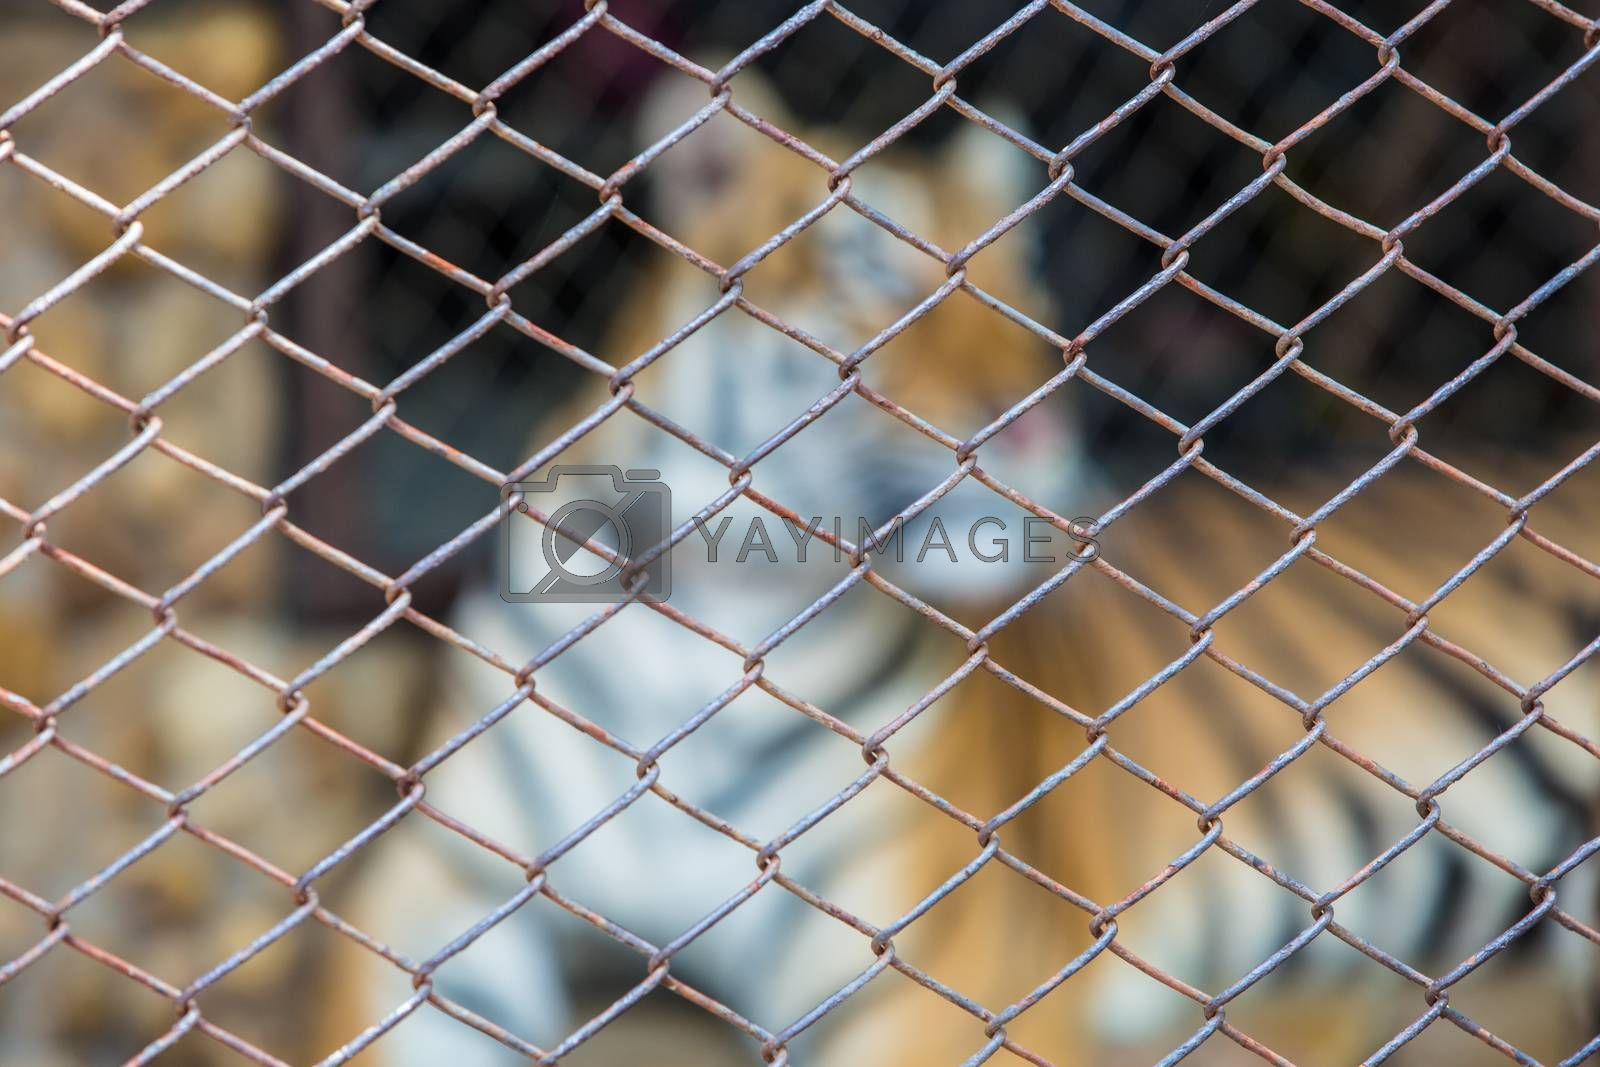 Royalty free image of Cage by tuchkay